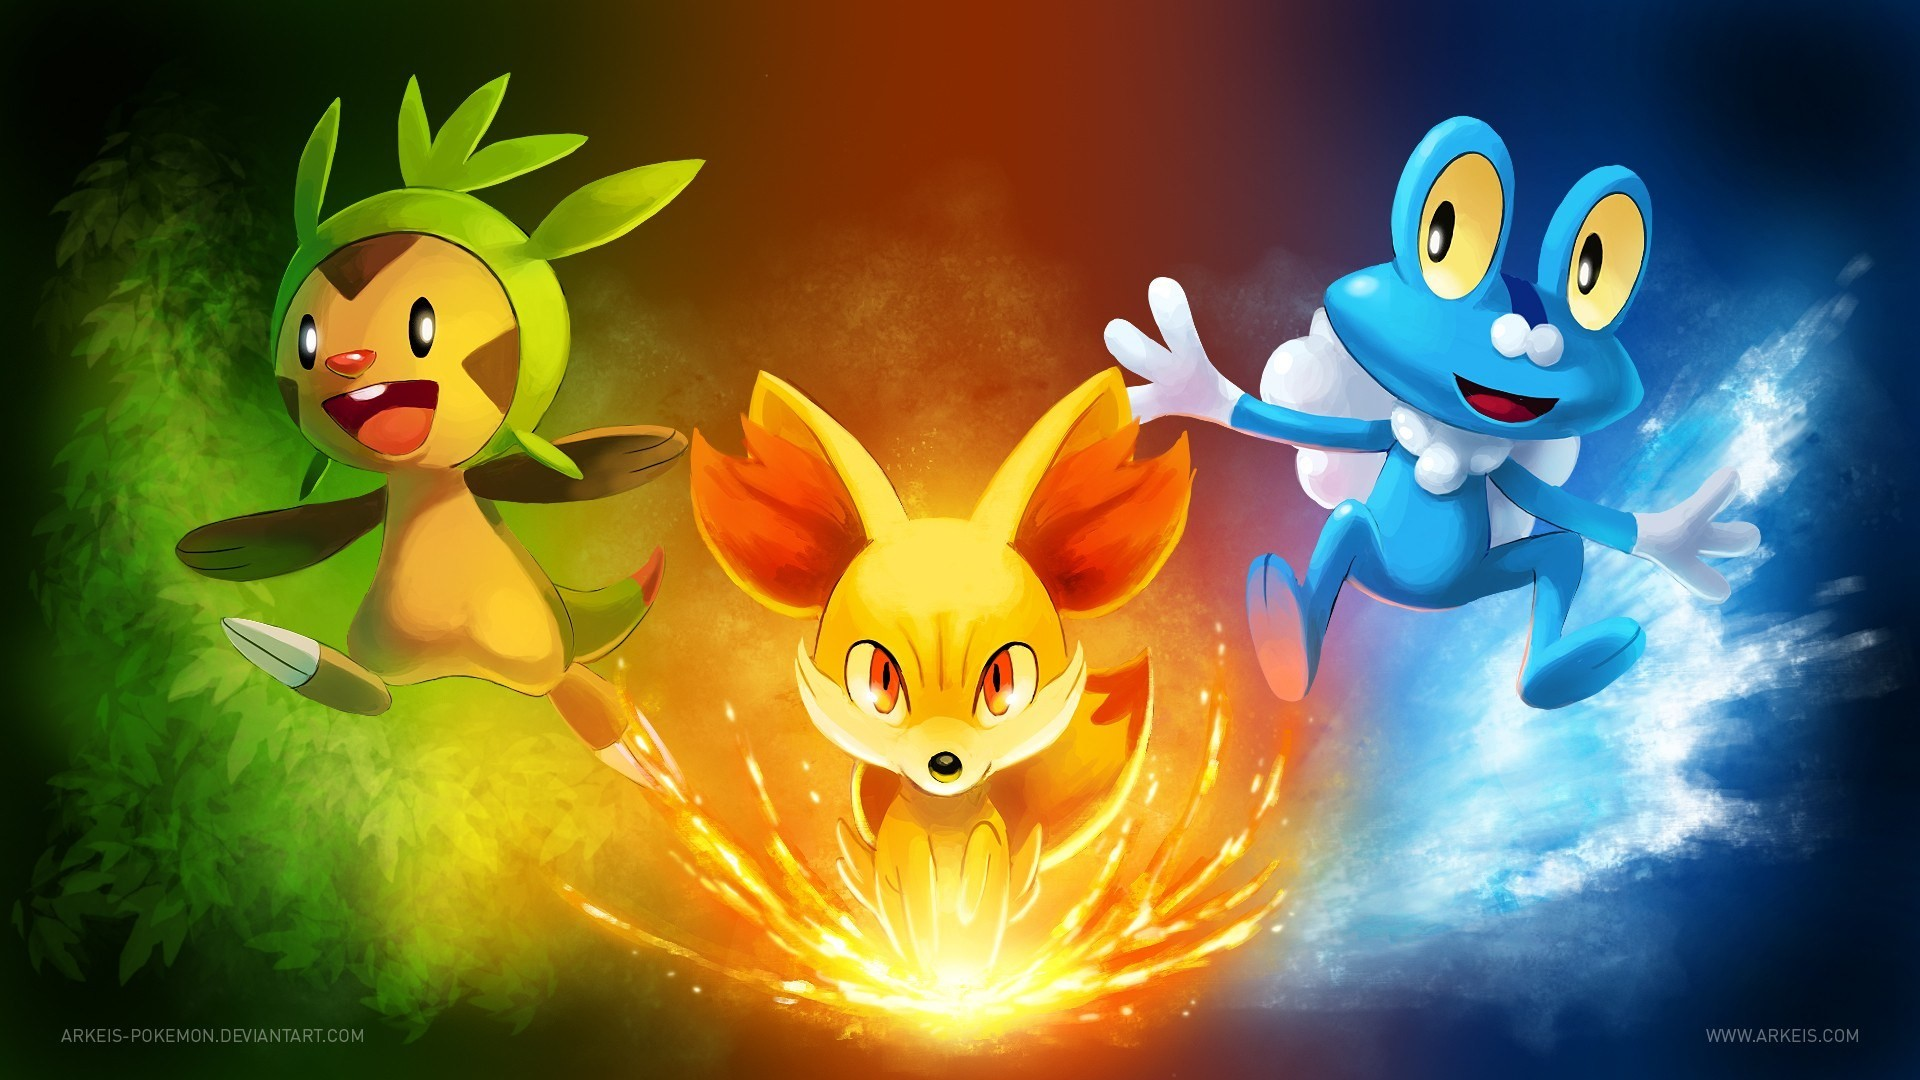 … Great Cute Pokemon Wallpaper Free Wallpaper For Desktop and Mobile in  All Resolutions Free Download 3d